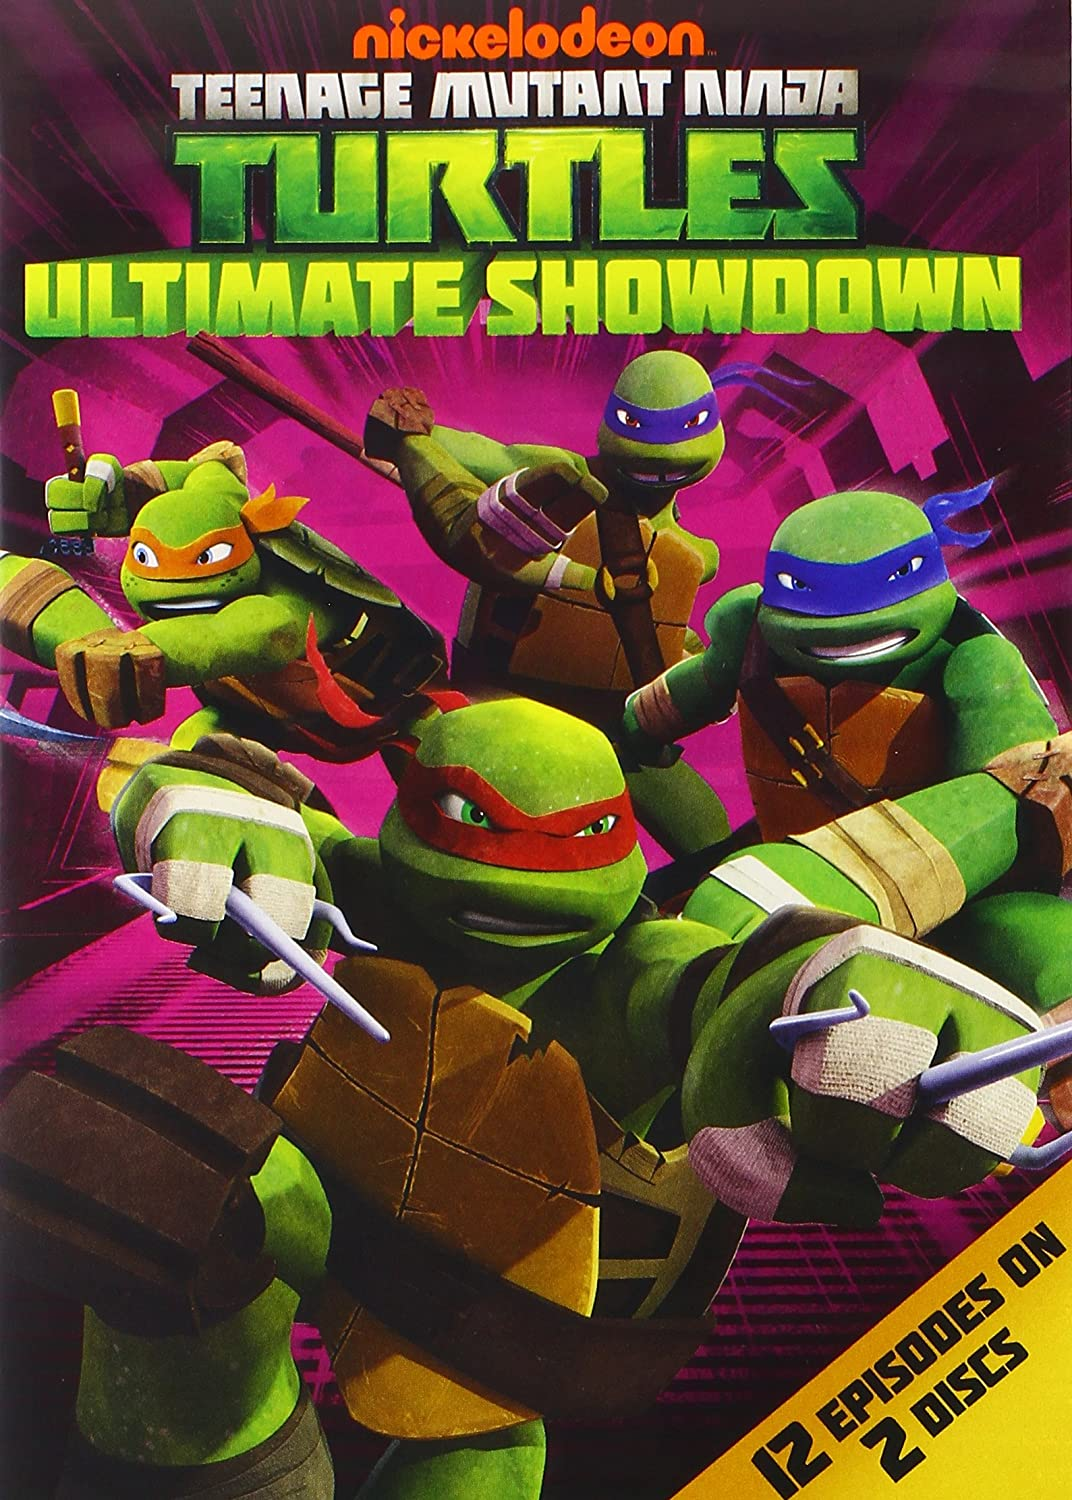 Amazon.com: Teenage Mutant Ninja Turtles: Ultimate Showdown ...